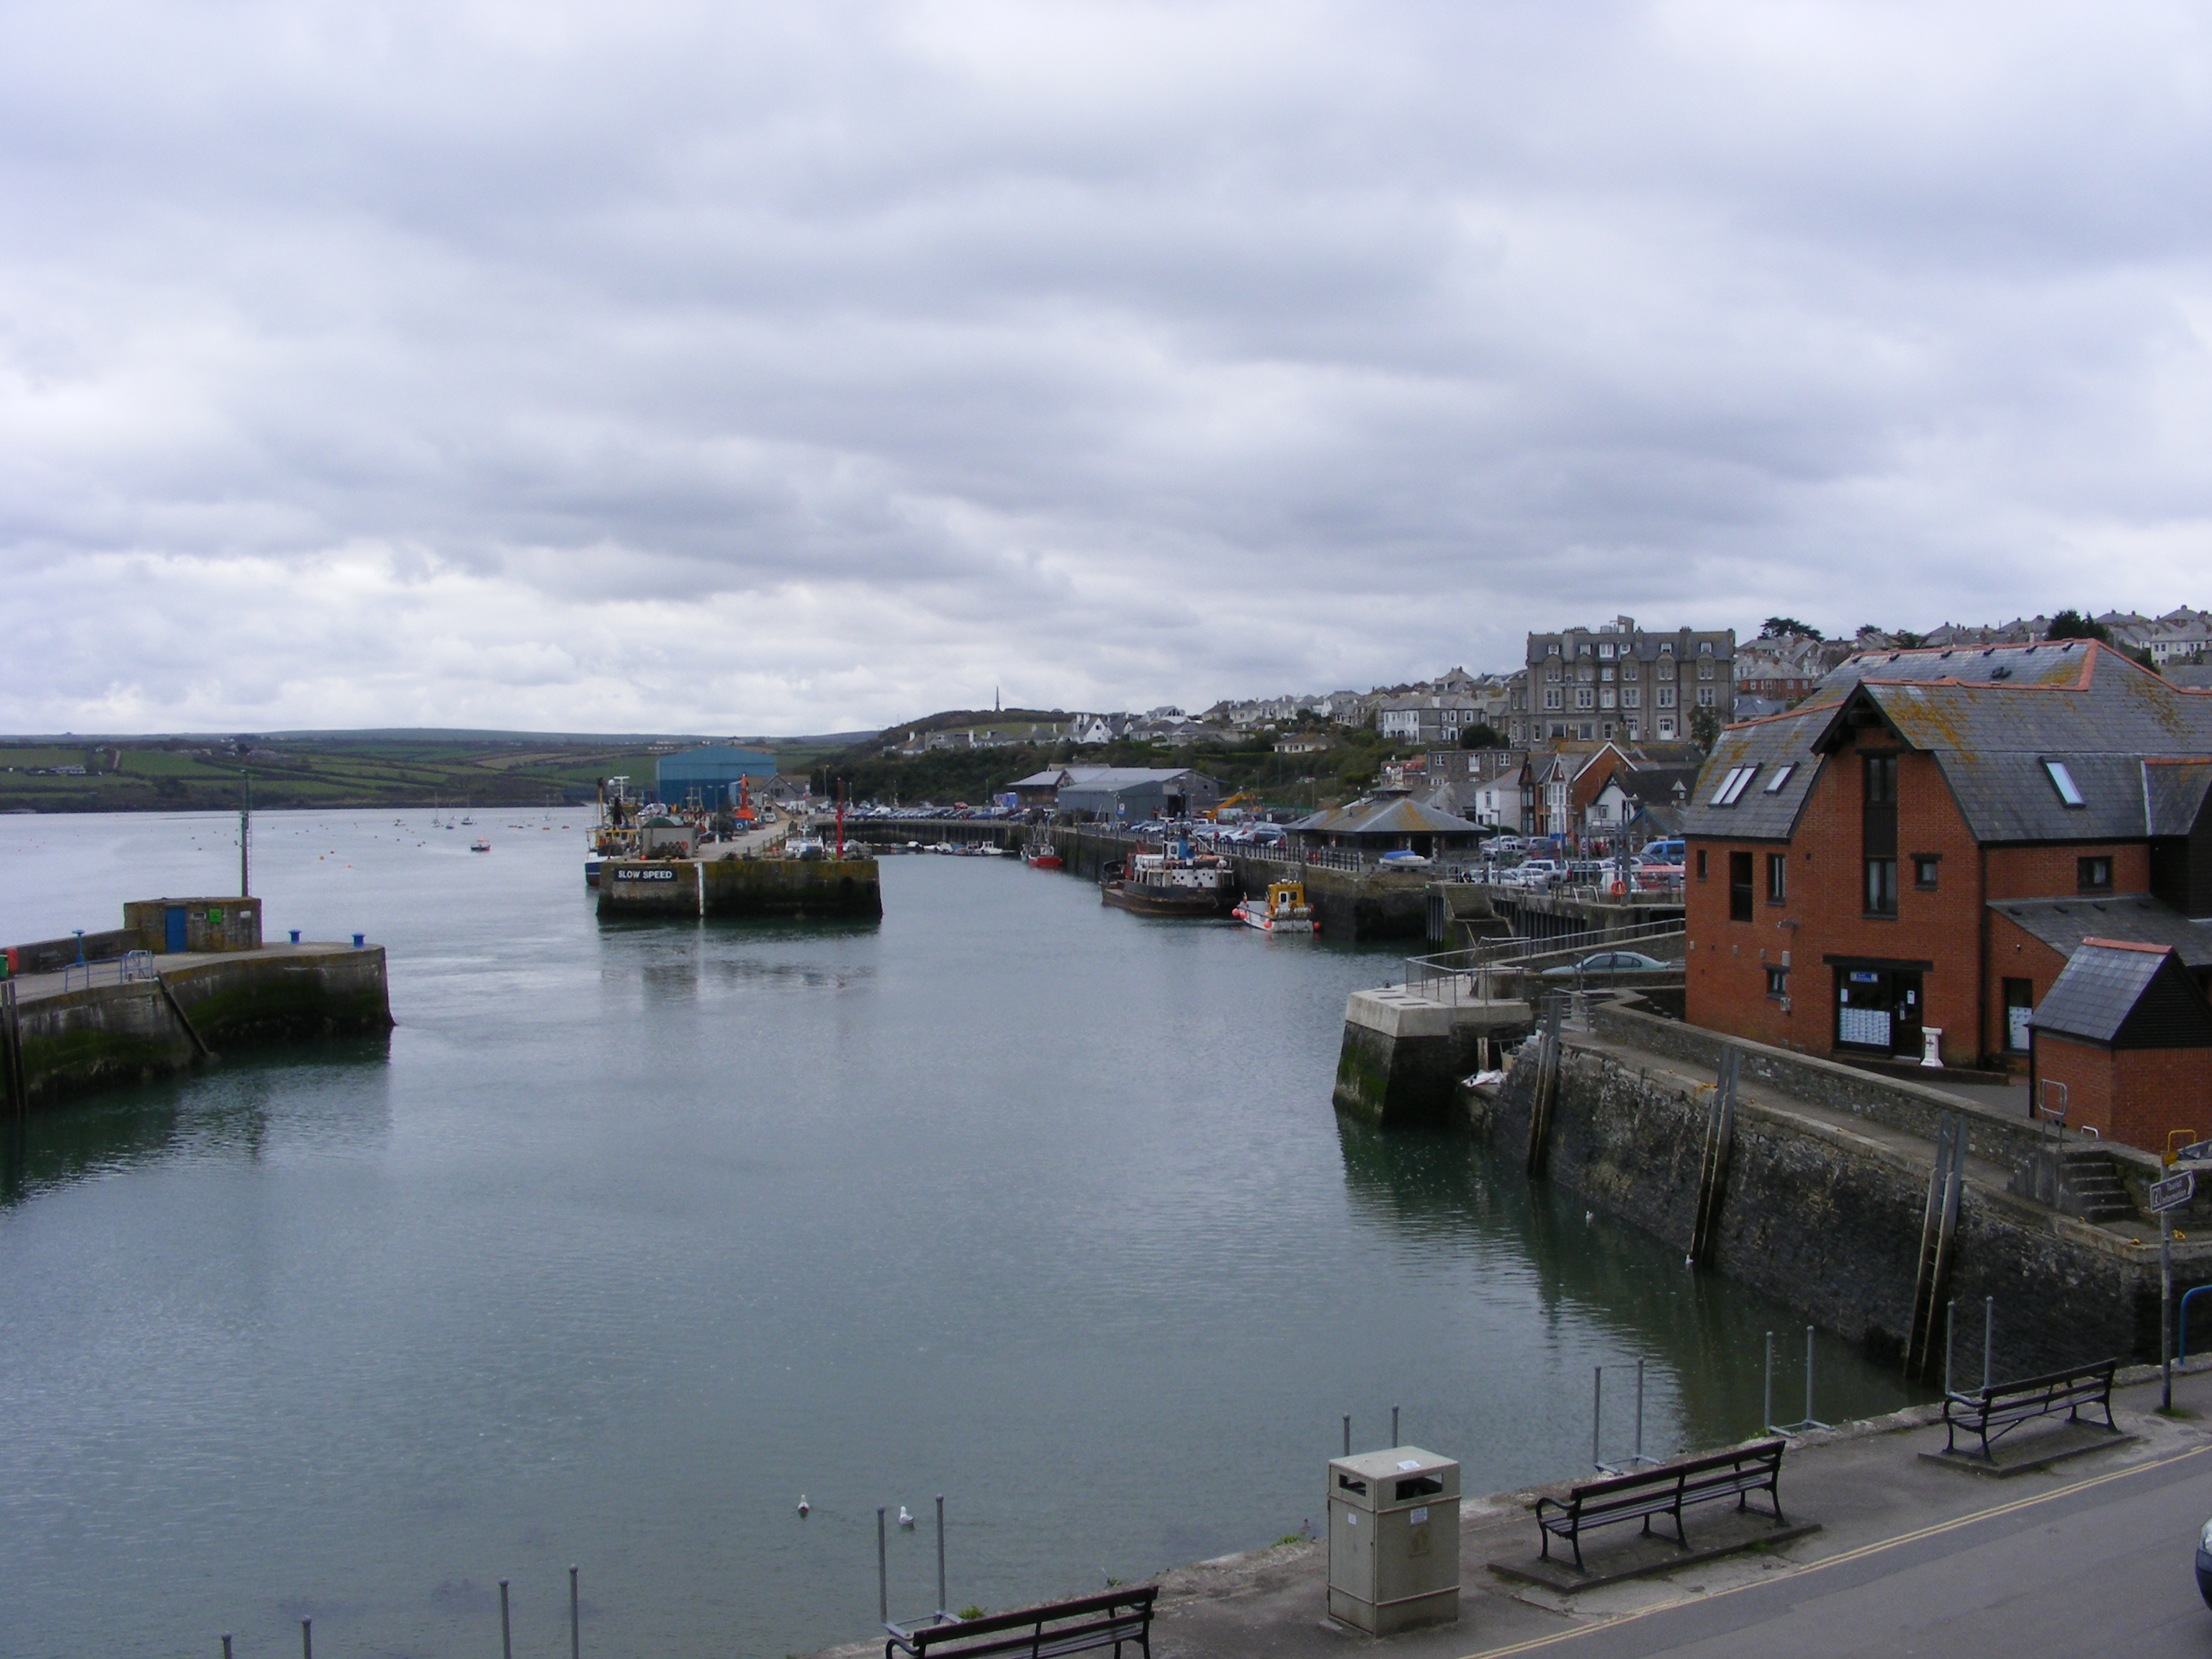 Outer Harbour File:padstow Outer Harbour